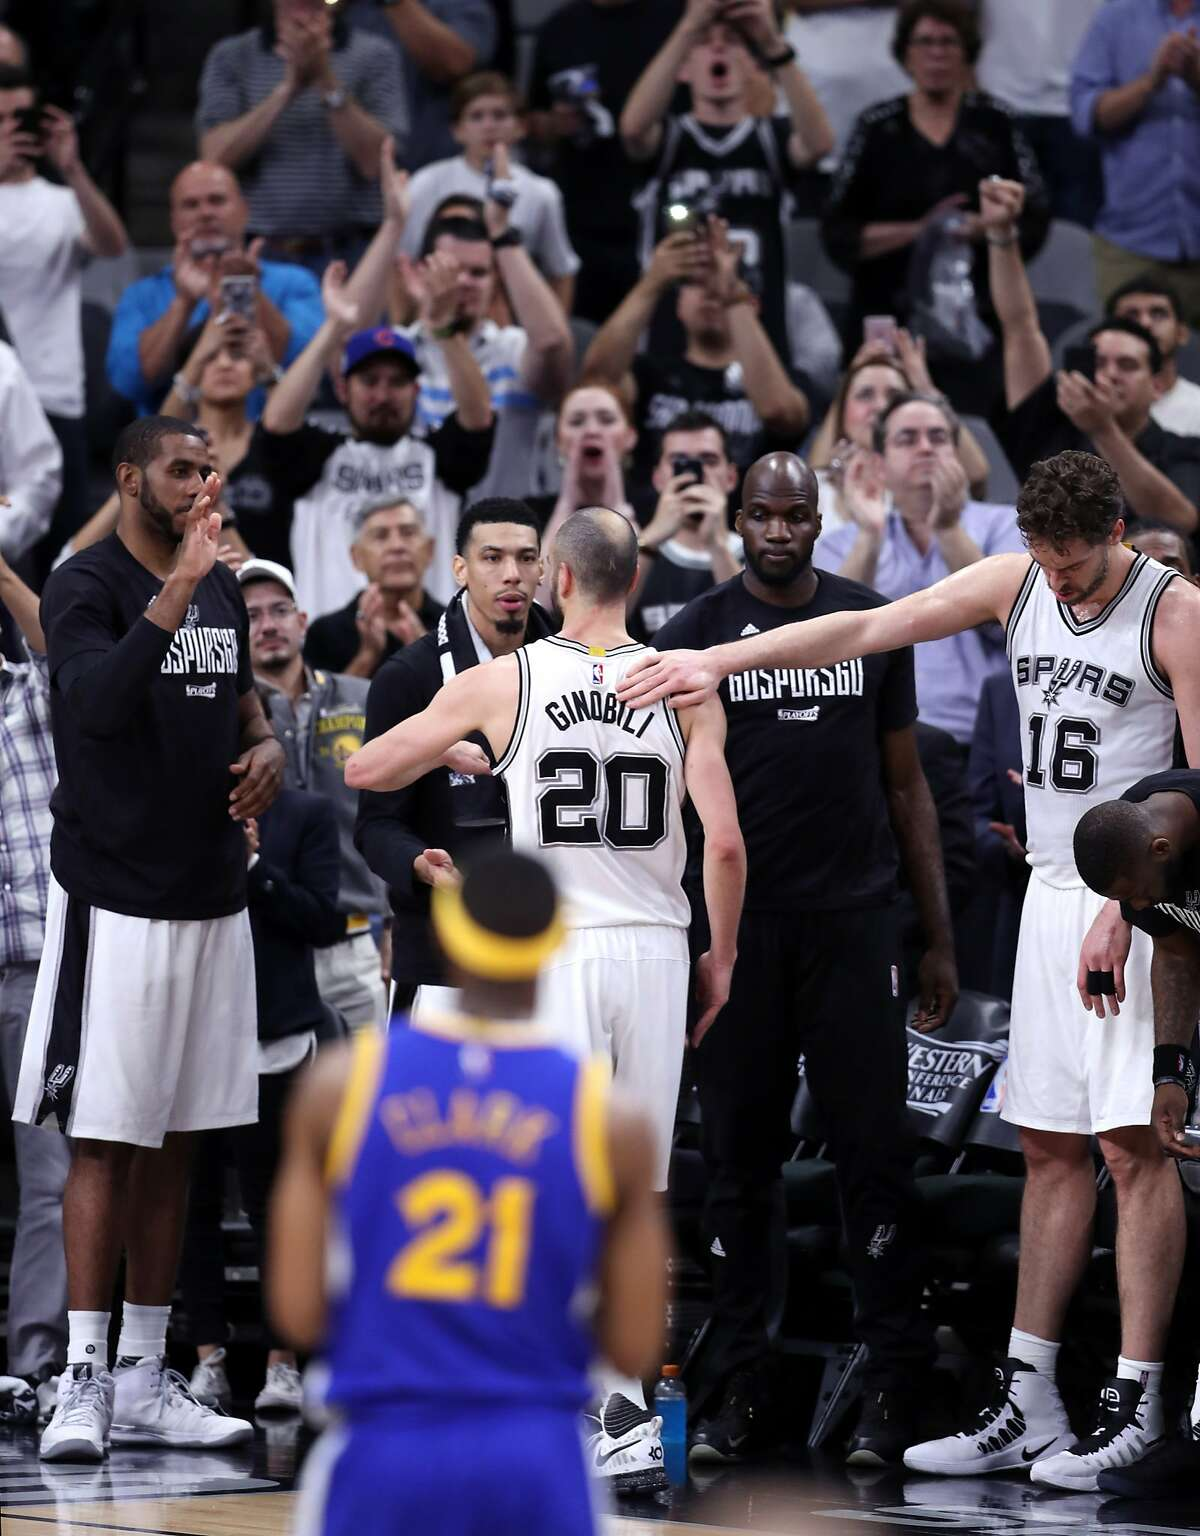 San Antonio Spurs' Manu Ginobili exits game late in 4th quarter of Golden State Warriors' 129-115 win during Game 4 of NBA Western Conference Finals at AT&T Center in San Antonio, Texas, on Monday, May 22, 2017.